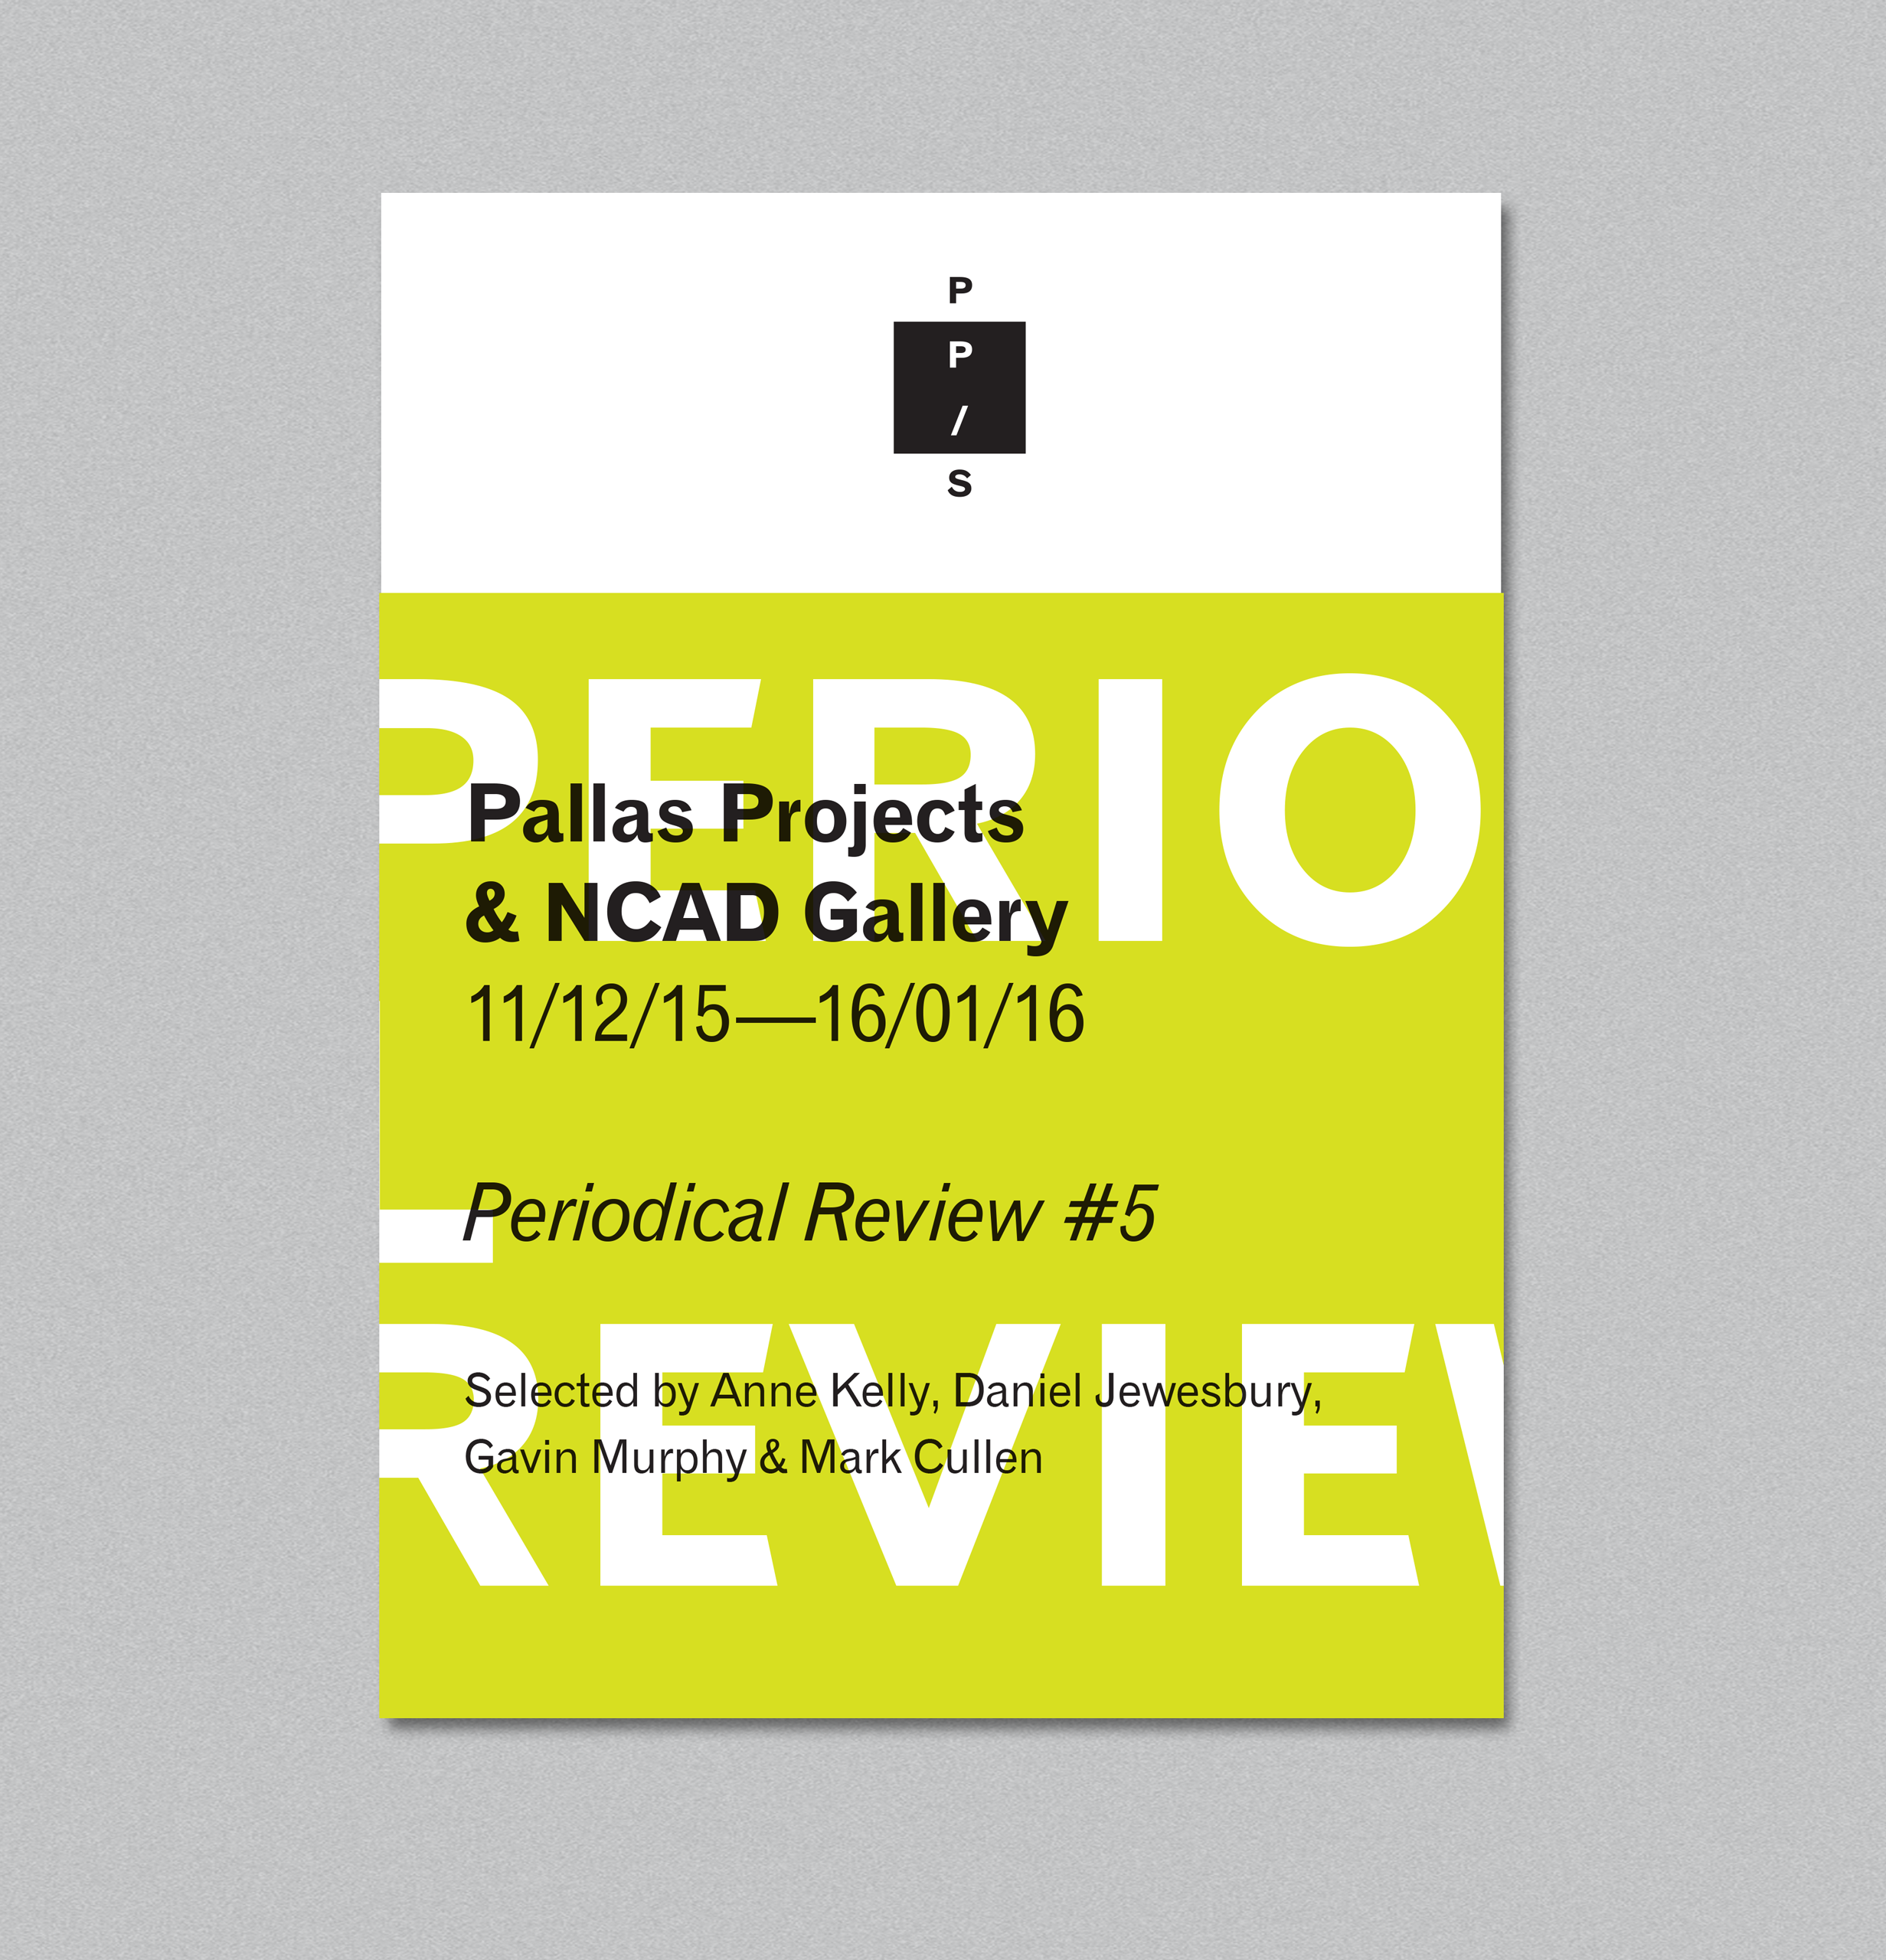 Cover image: Periodical Review #5